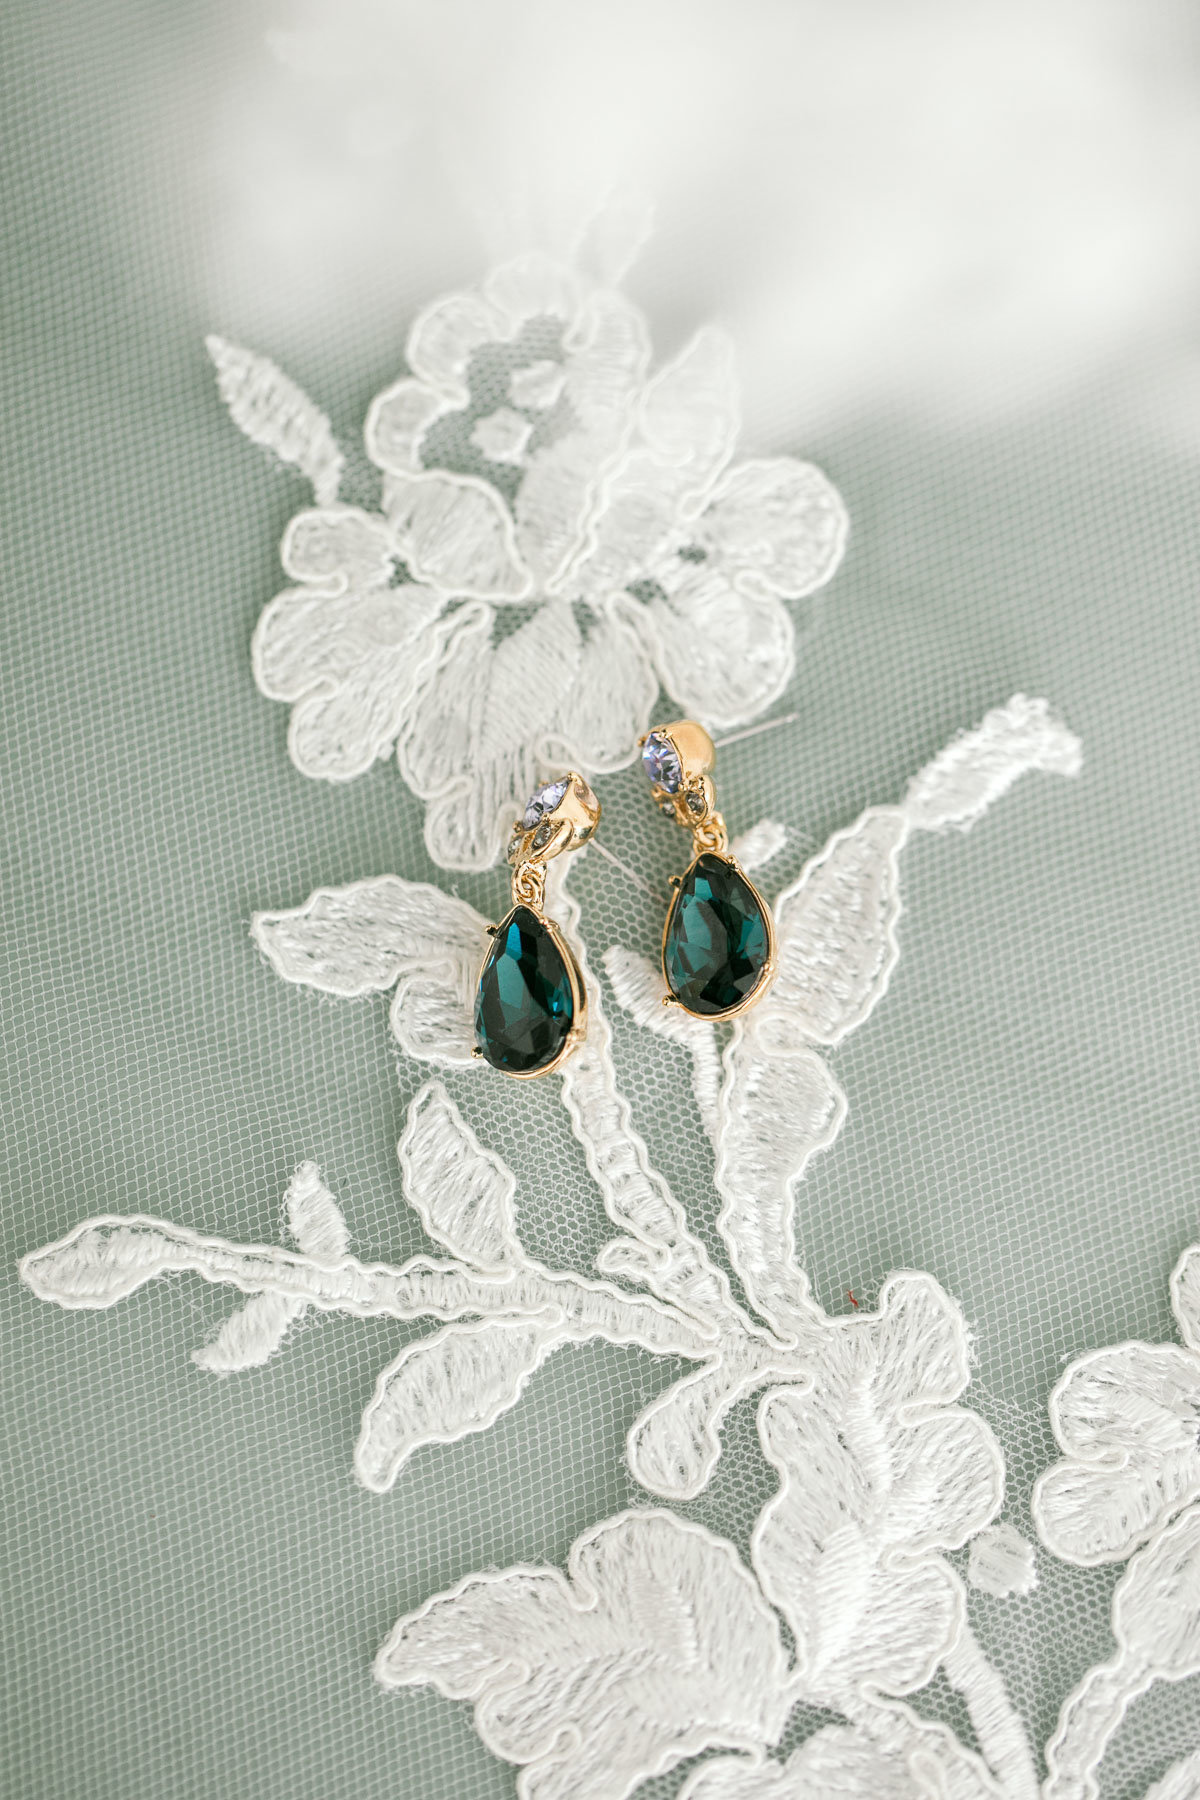 vintage emerald green earrings on lace